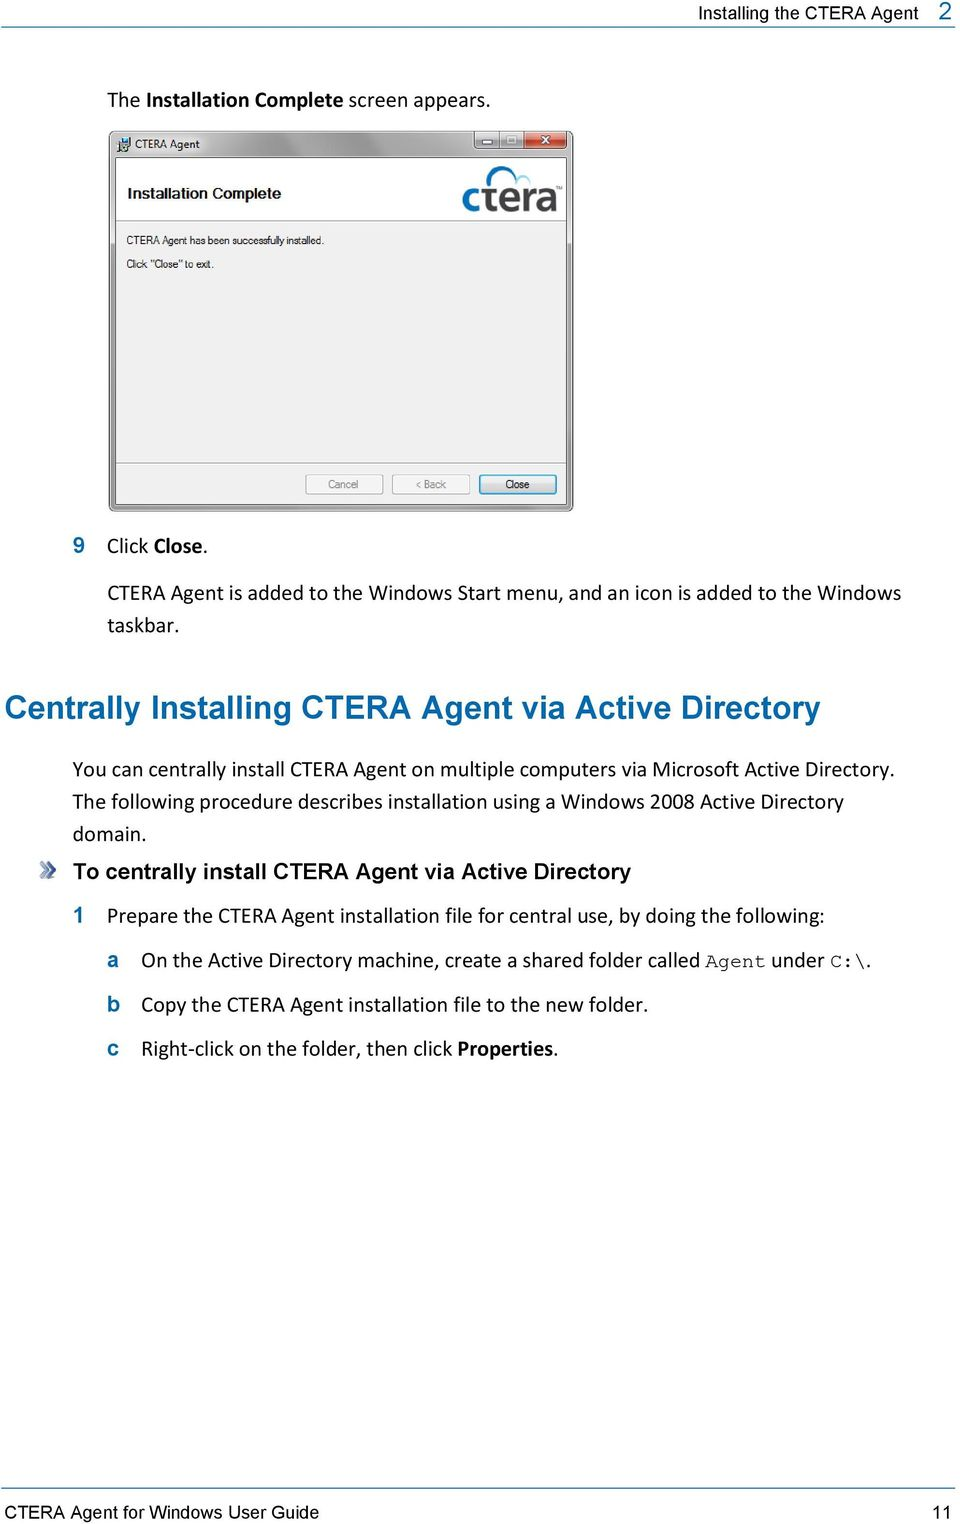 The following procedure describes installation using a Windows 2008 Active Directory domain.